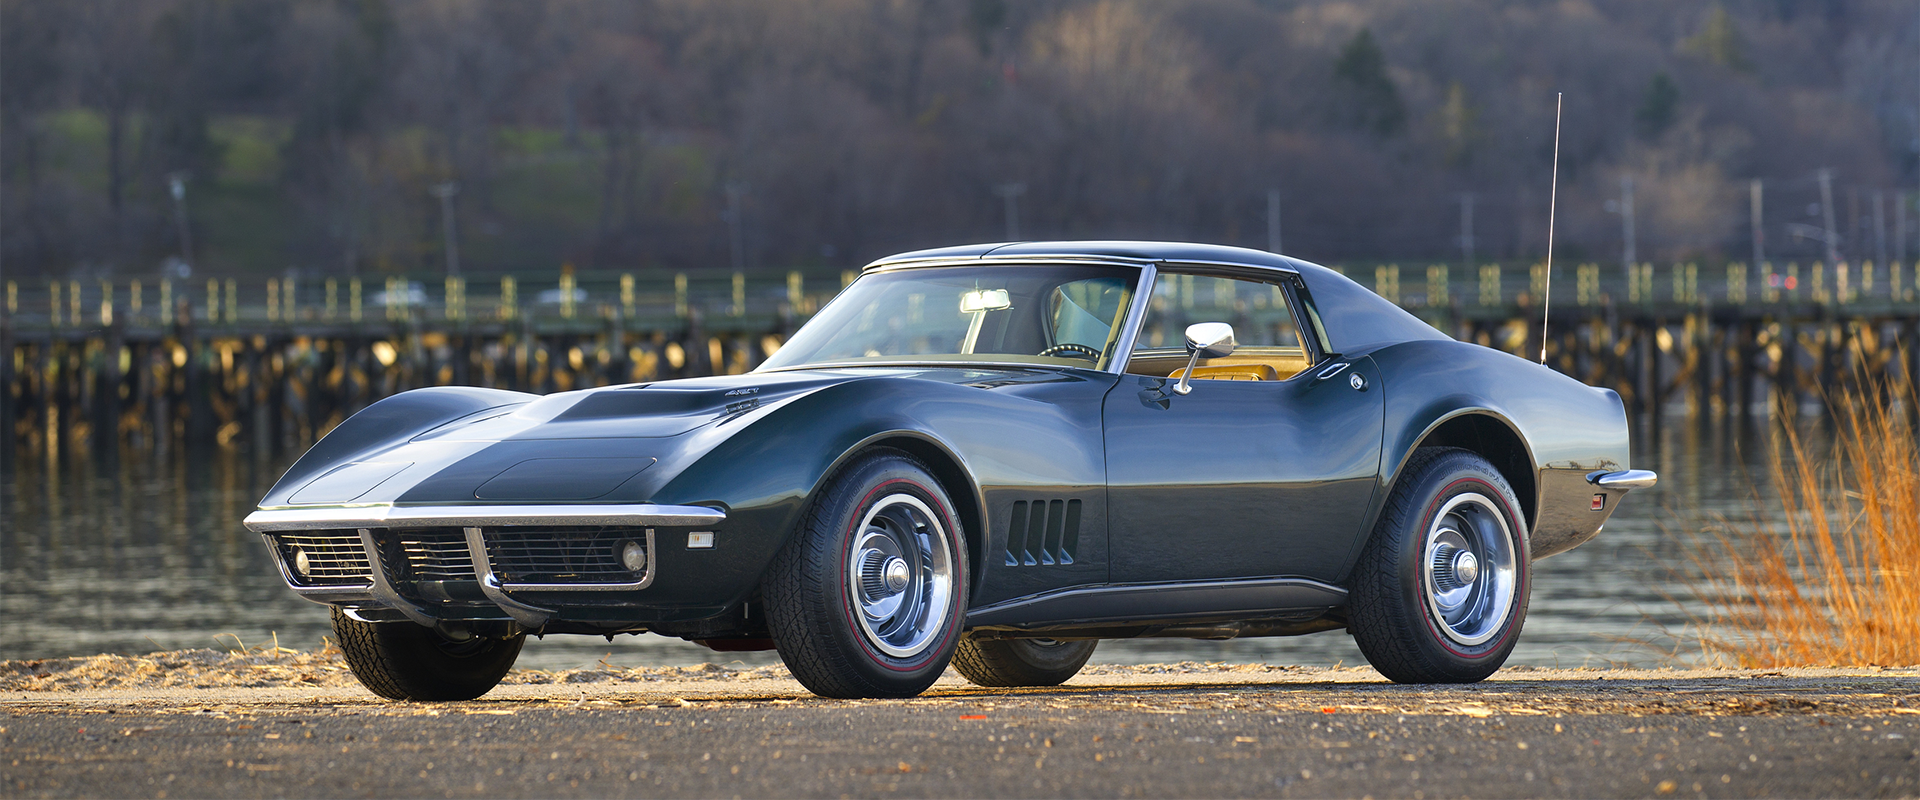 Dream Car Restorations NY | 1968 Corvette Coupe